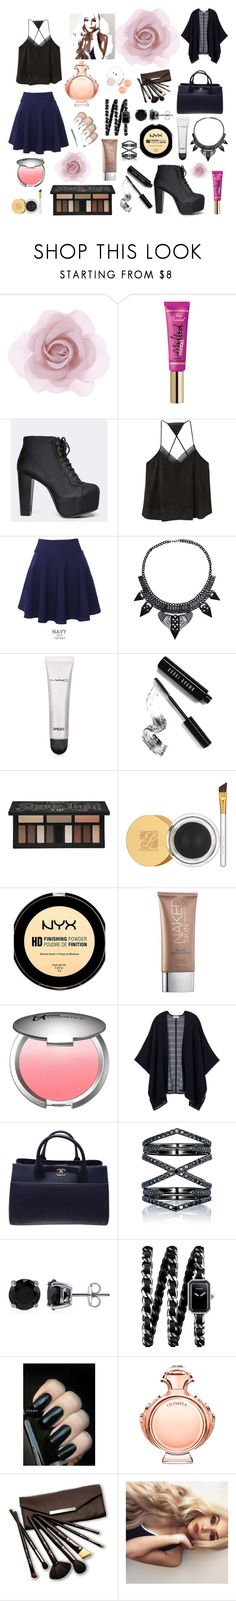 """""""Untitled #20"""" by sarahdoyle448 ❤ liked on Polyvore featuring Accessorize, Too Faced Cosmetics, Speed Limit 98, MANGO, QNIGIRLS, MAC Cosmetics, Bobbi Brown Cosmetics, Kat Von D, Estée Lauder and NYX"""